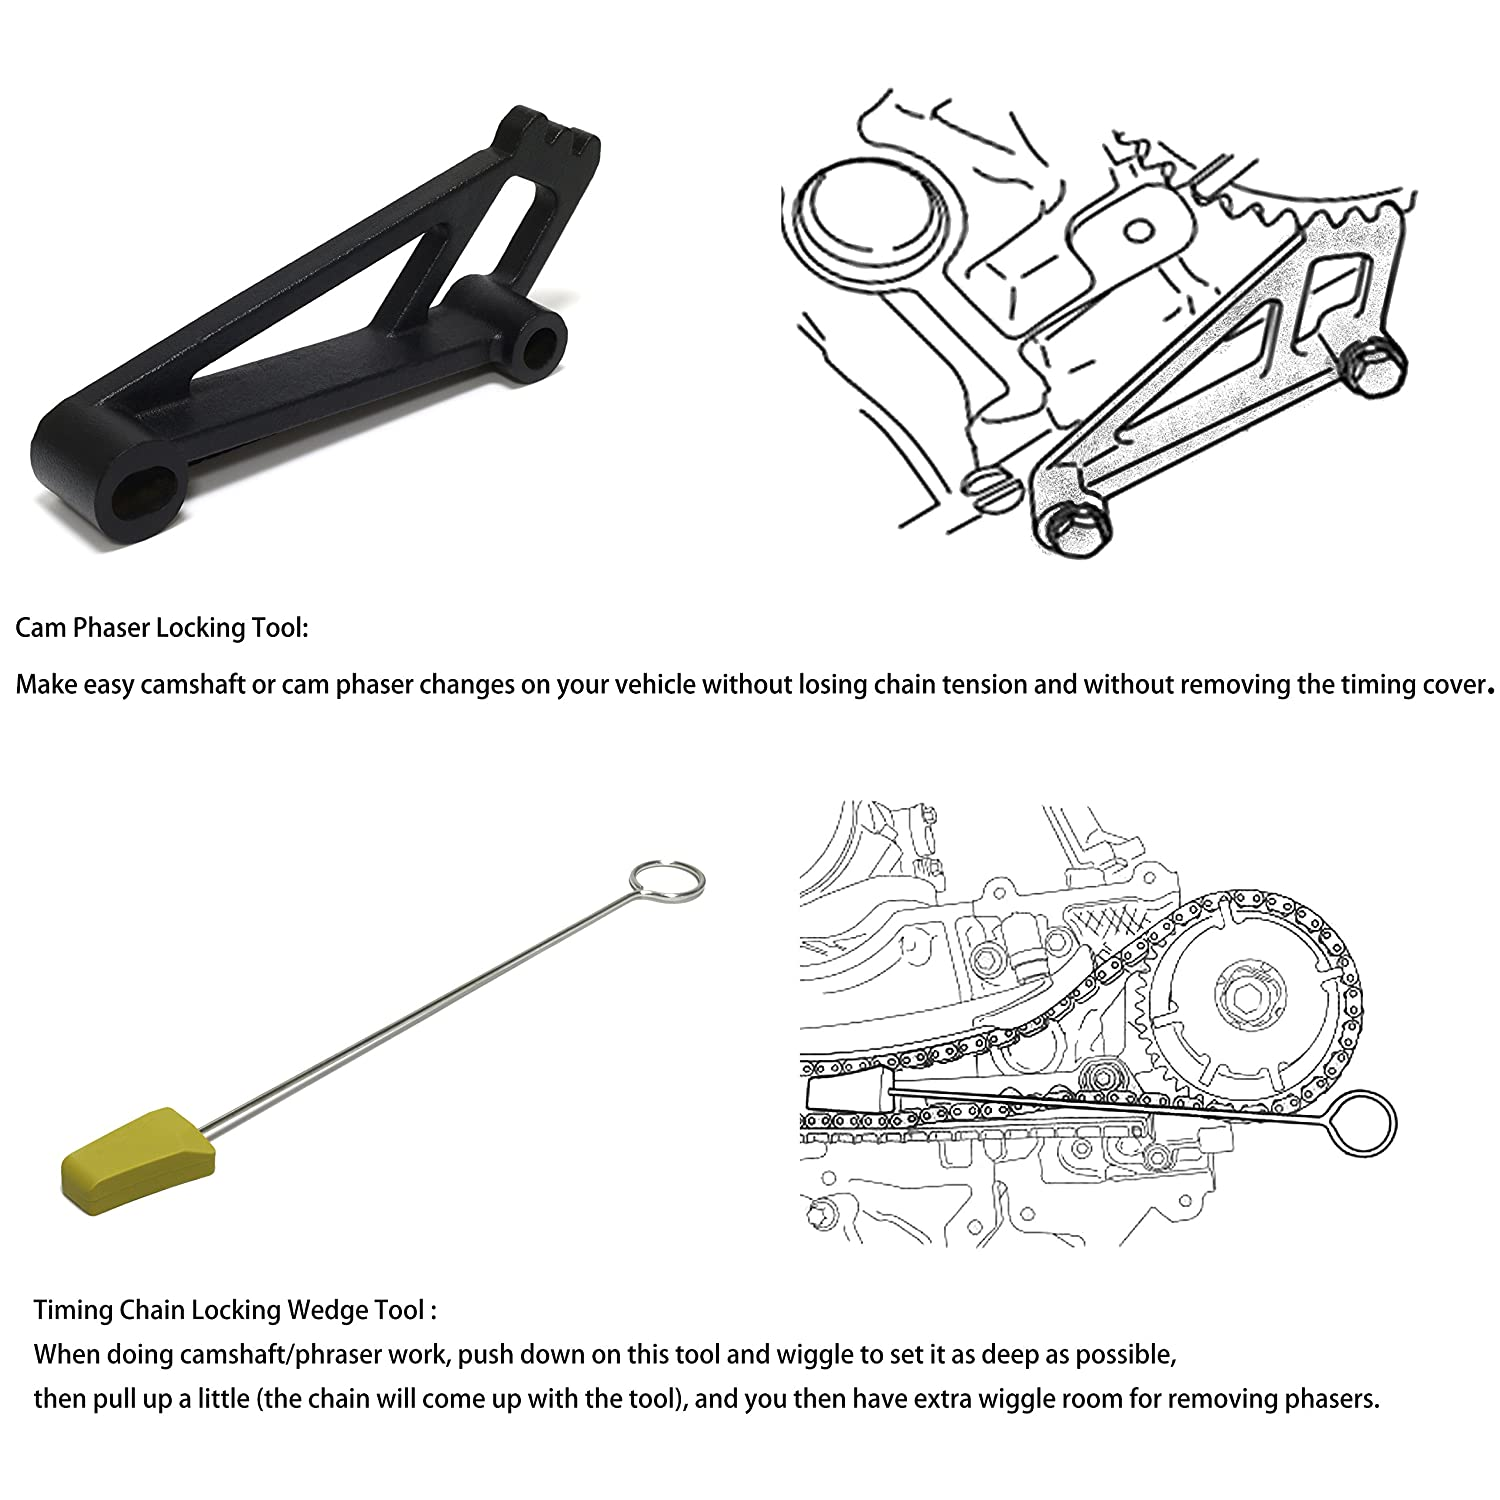 2005 4 6l ford f 150 engine pulley diagram electrical circuit digram2005 4 6l ford f 150 engine pulley diagram best wiring libraryamazon com enrand cam tool